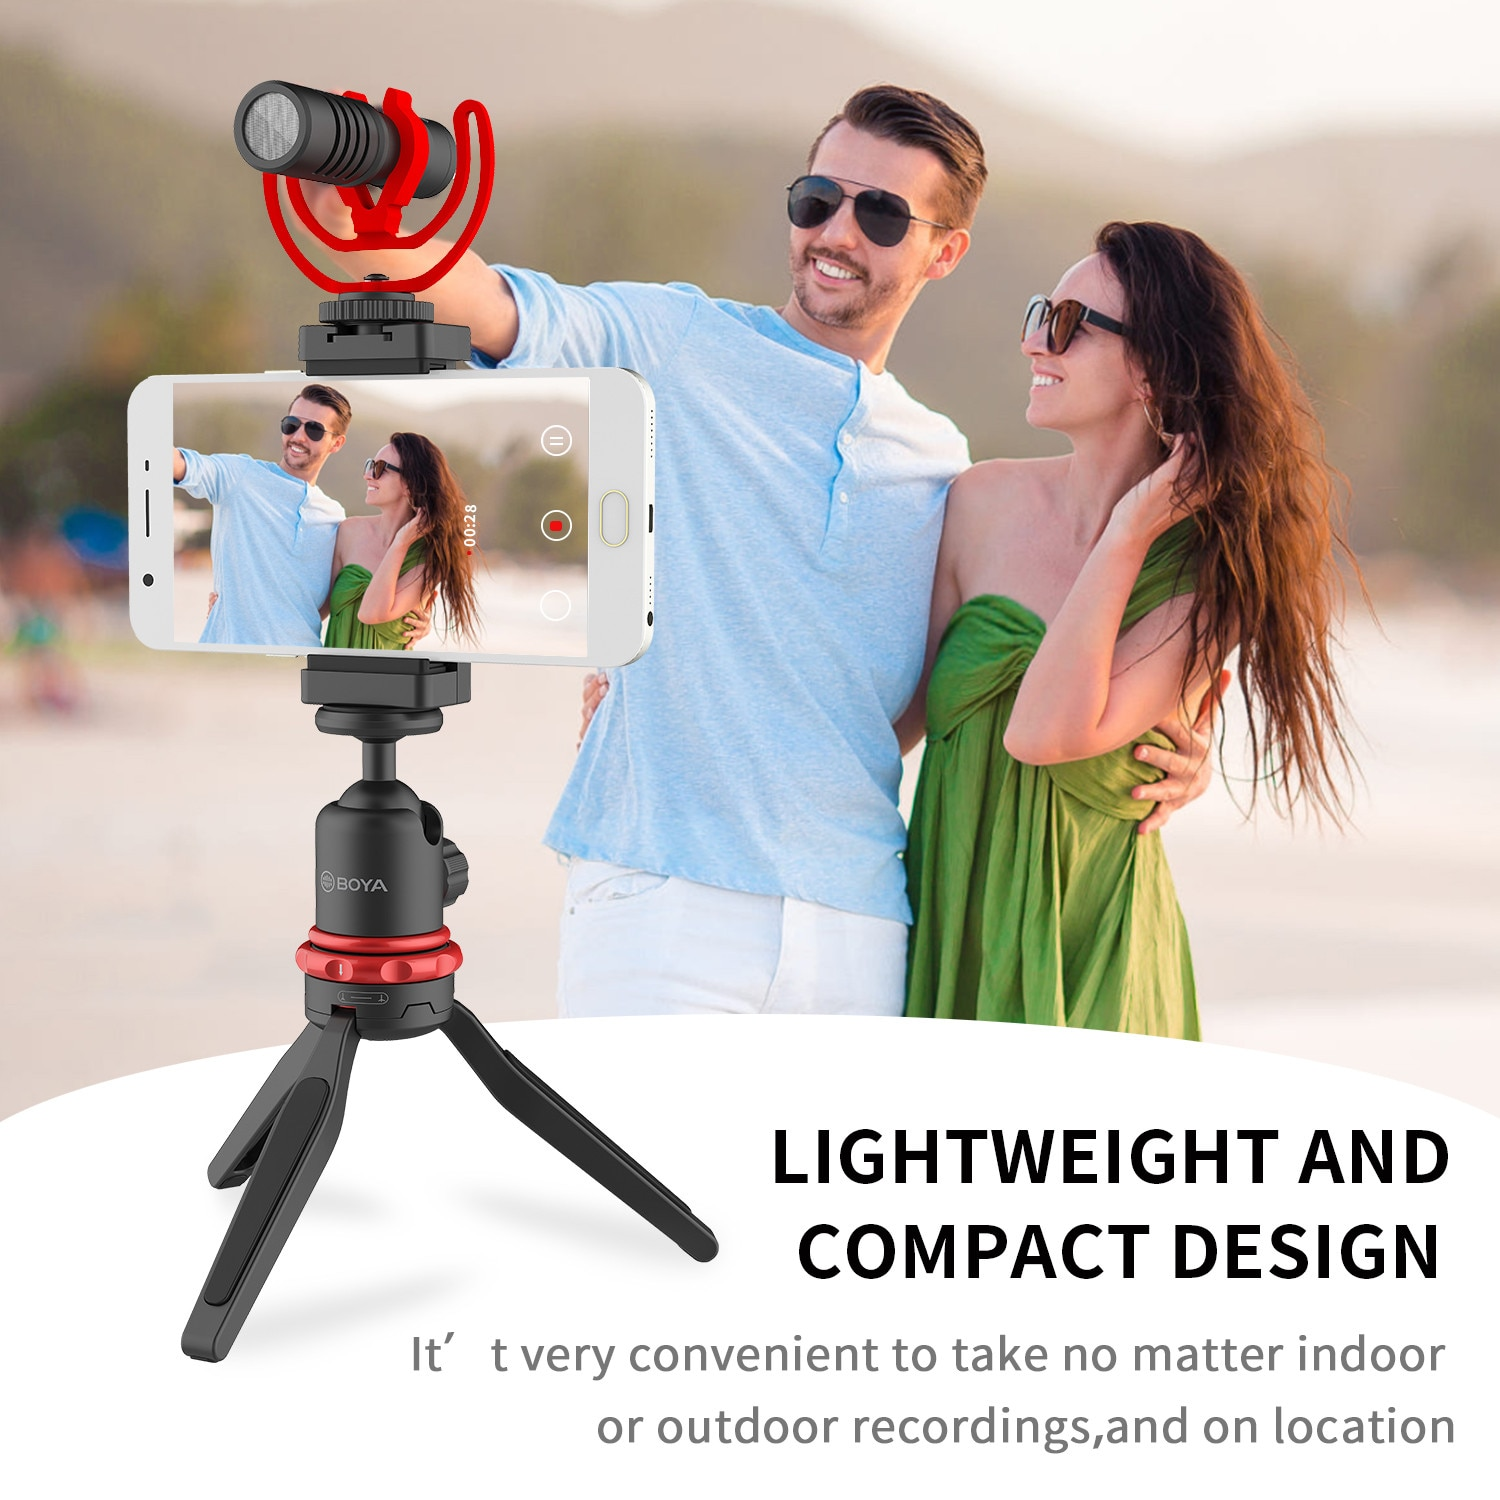 BOYA BY-VG330 Universal Smartphone Video Kit  for video shooting vlogging podcasting and more enlarge